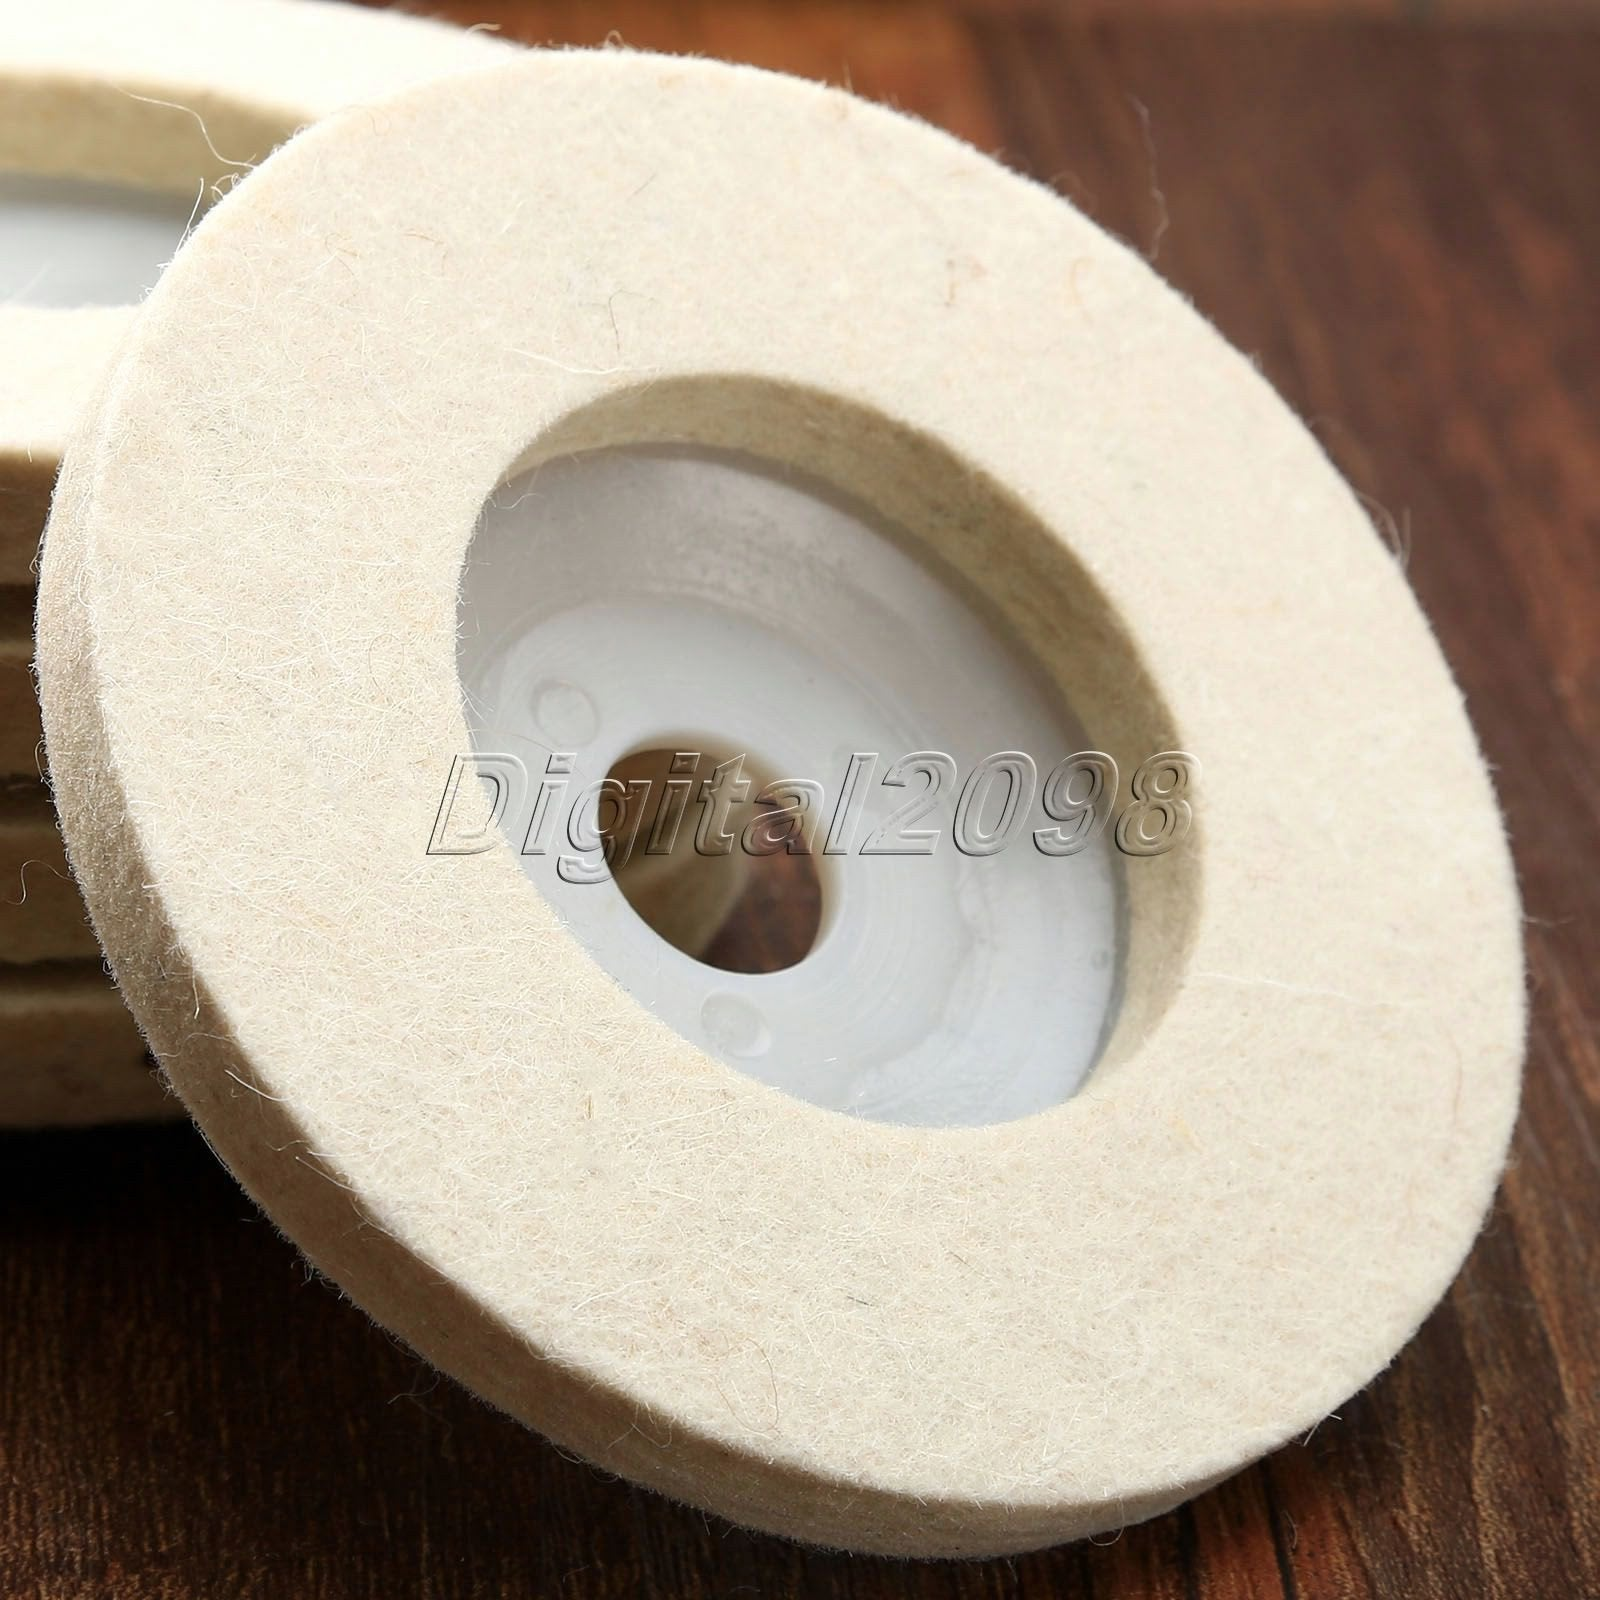 4 inch 100*10mm*16mm Round Polishing Wheel Wool FELT Buffing Polishers Pad Pearl Cloth Wheel Buffing Wheels Abrasive Tool